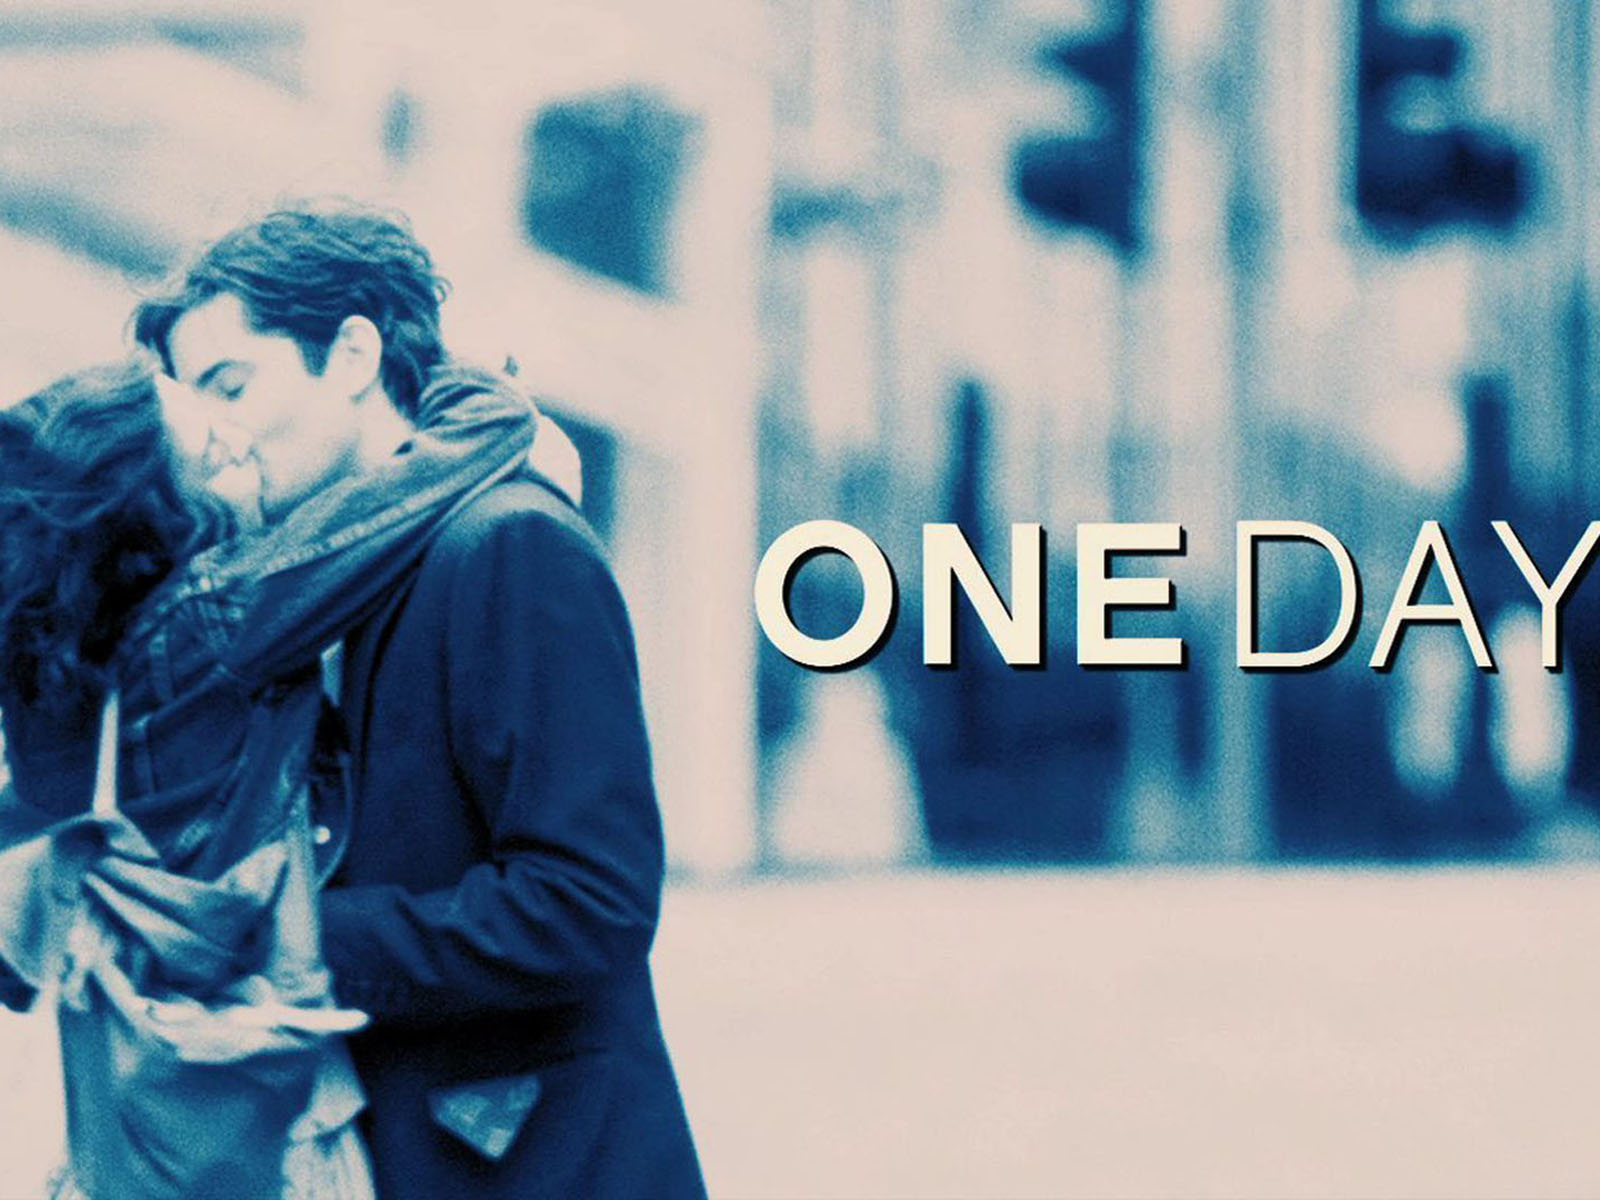 One Day Movie Wallpaper